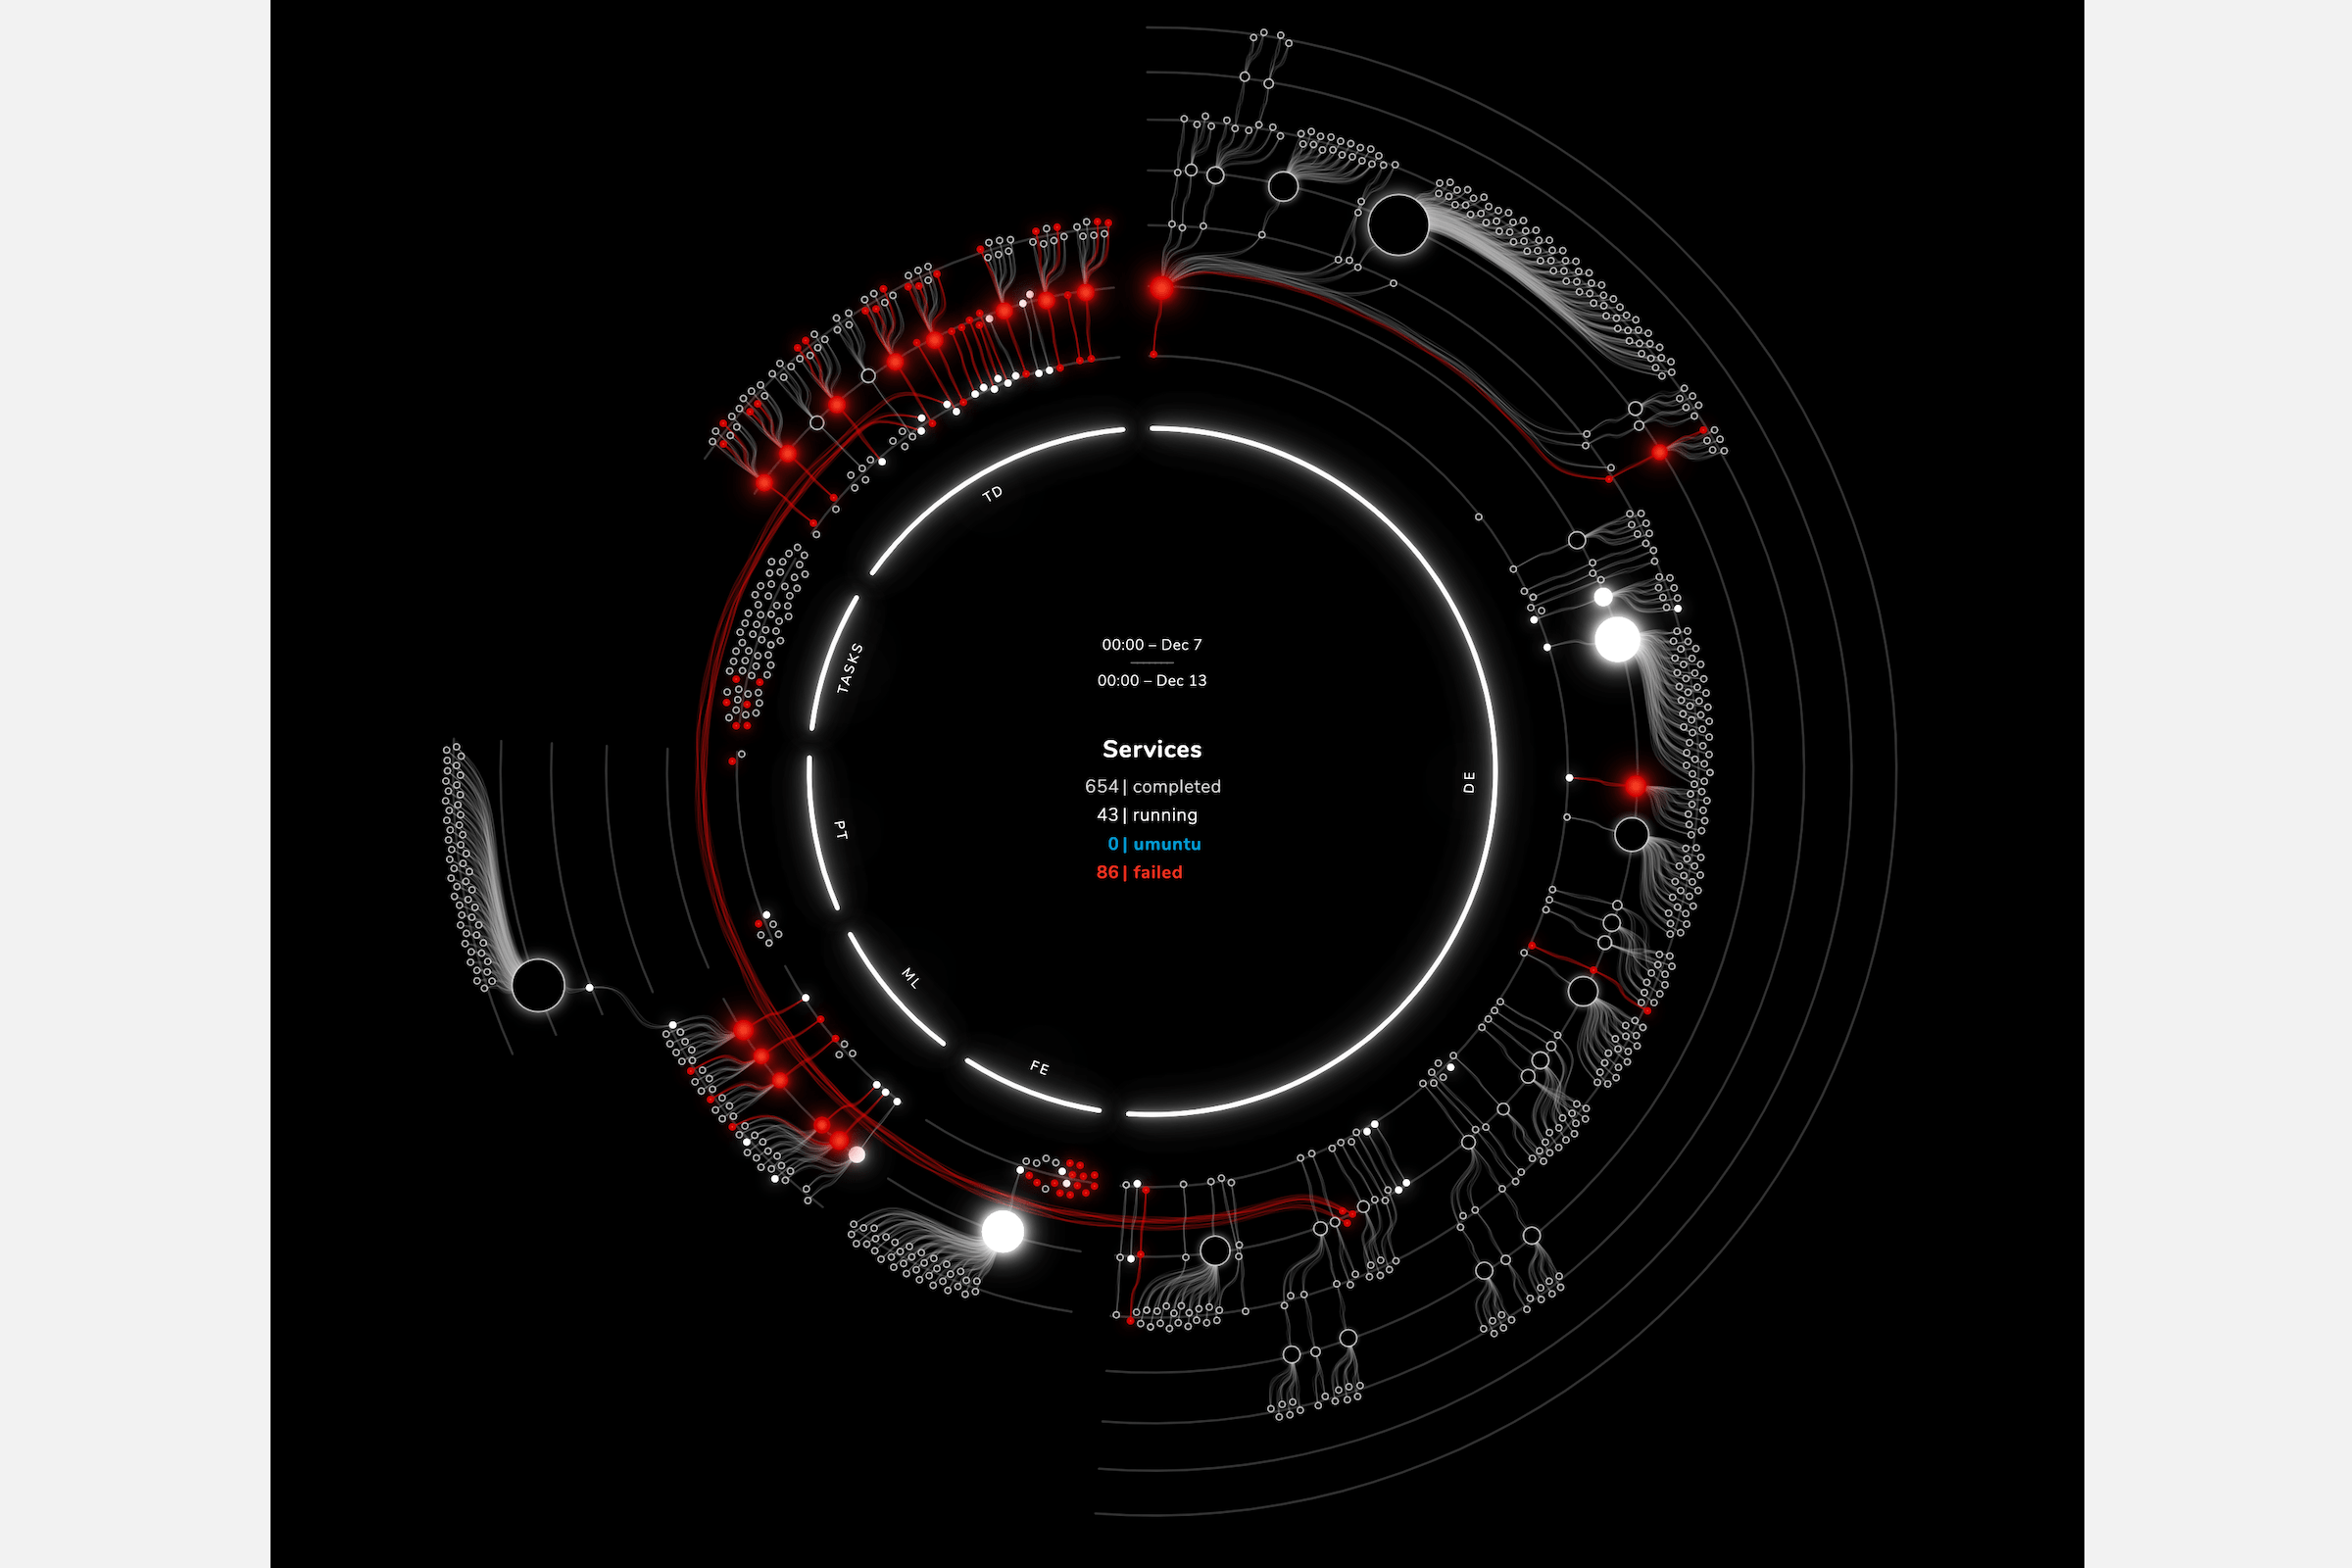 The 'depth circle' showing all the services that ran during a certain period and their connections